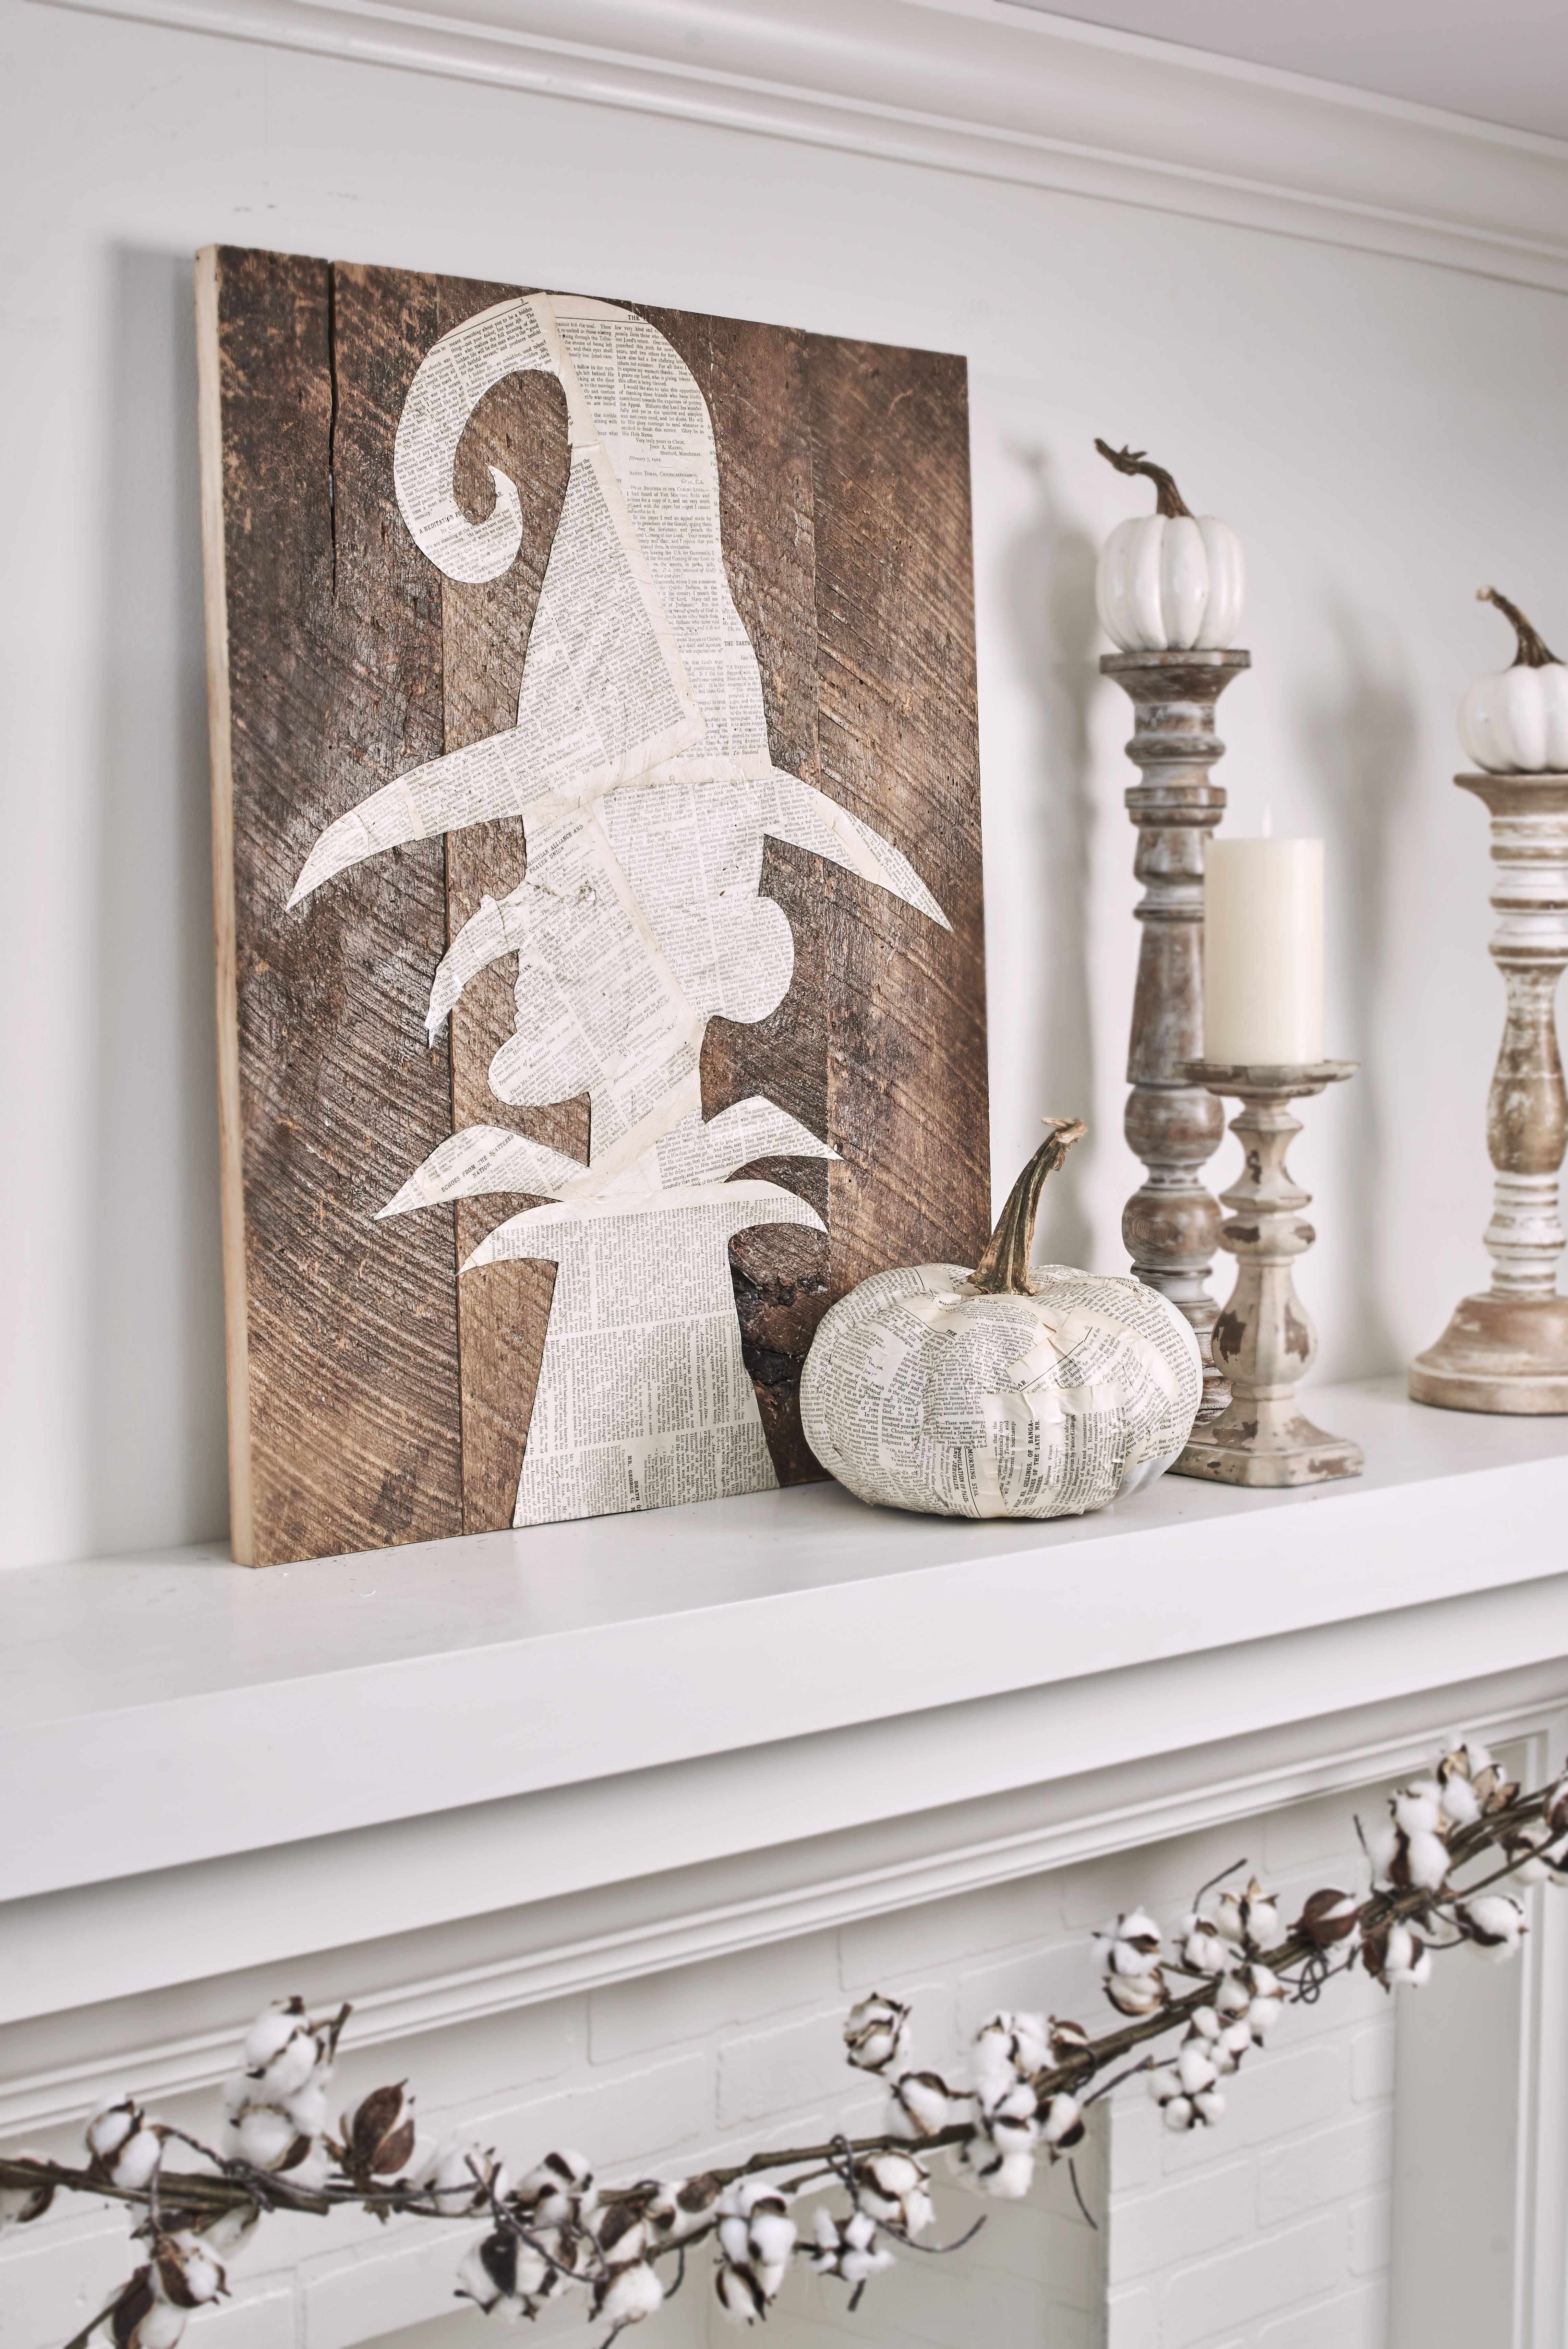 20 Insanely Cute Witch-Theme Halloween Decorations You Can Make with Ease